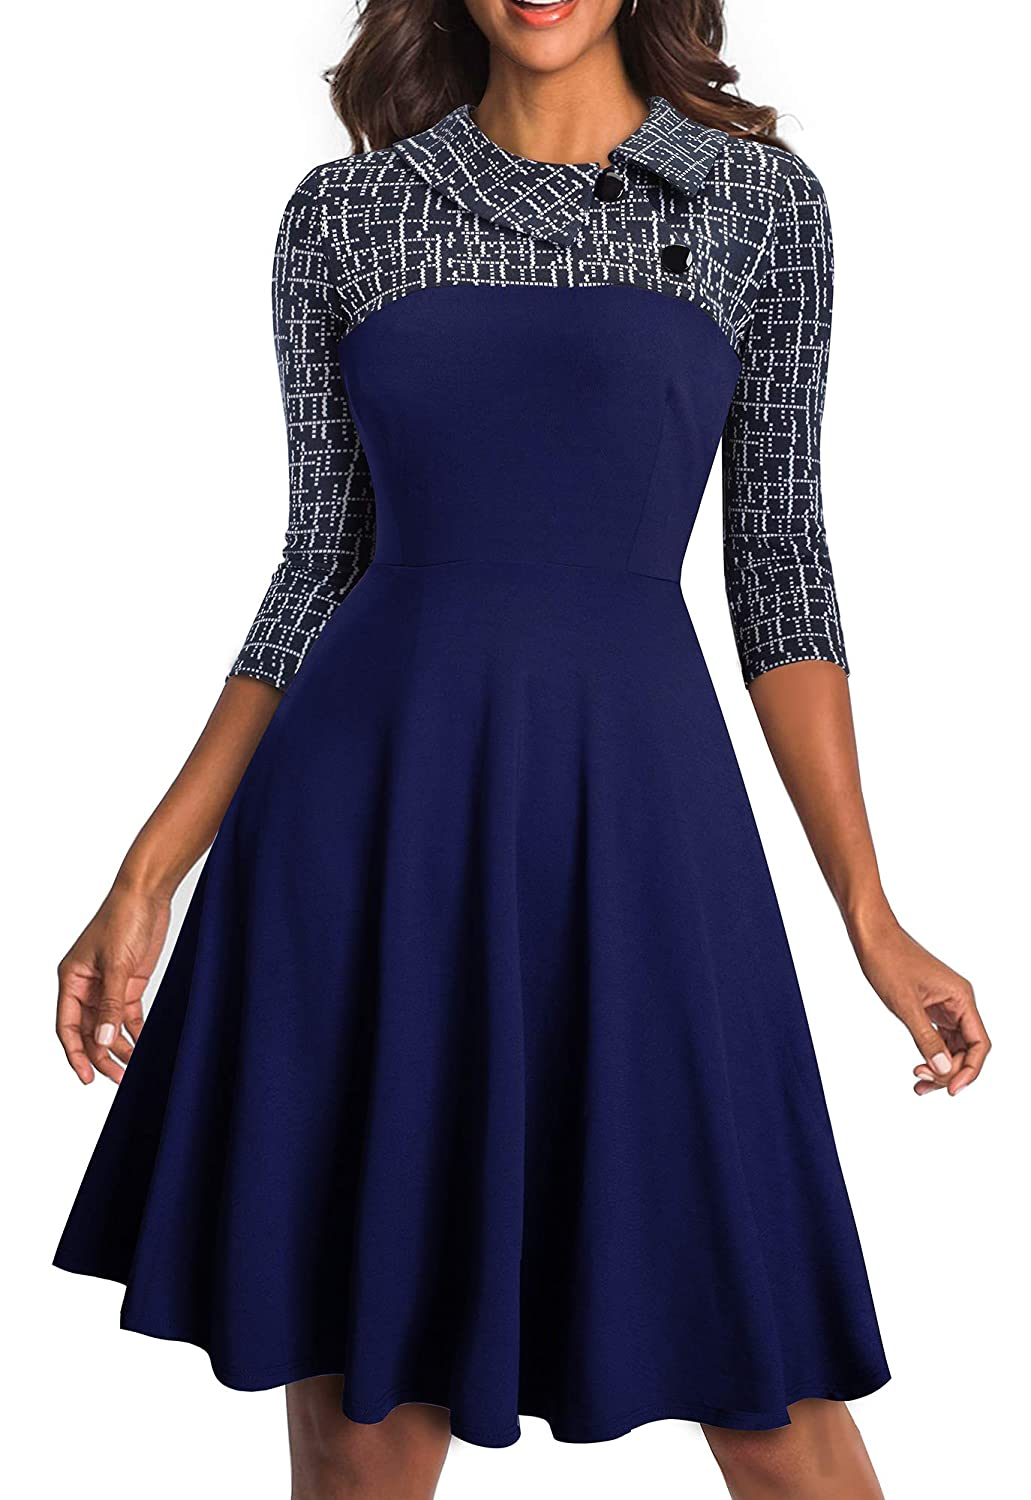 Dark bluee HOMEYEE Women's Lapel 3 4 Sleeve Church Aline colorblock Work Dress A121